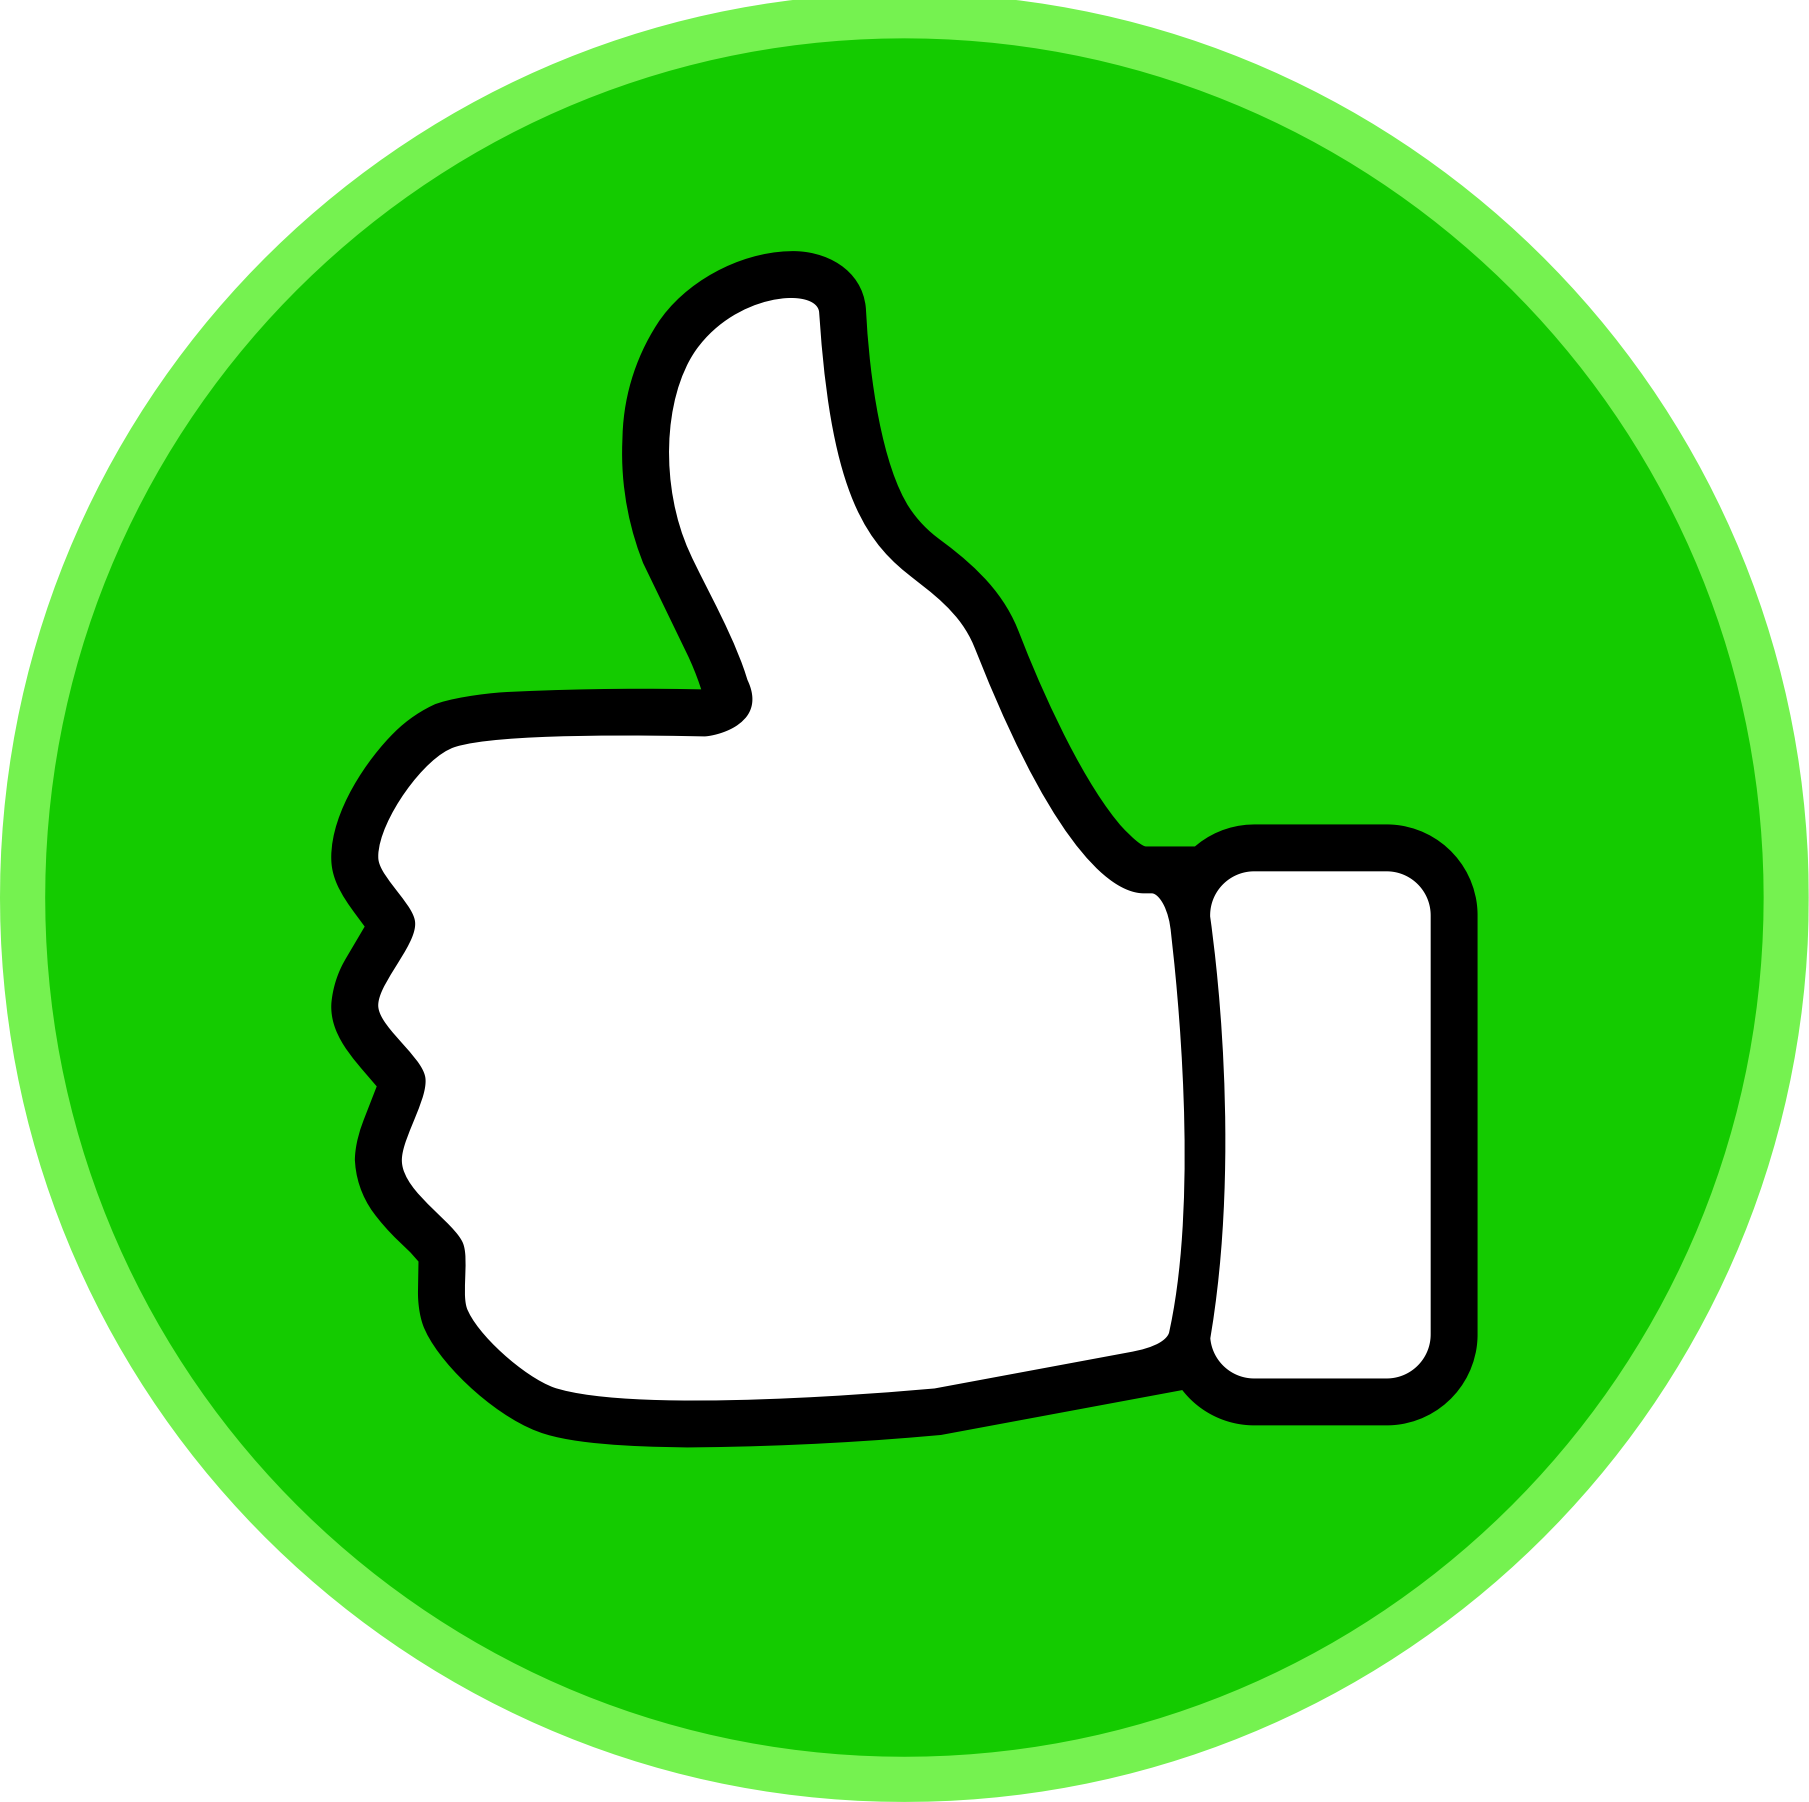 Fingers clipart voting. Up vote this please